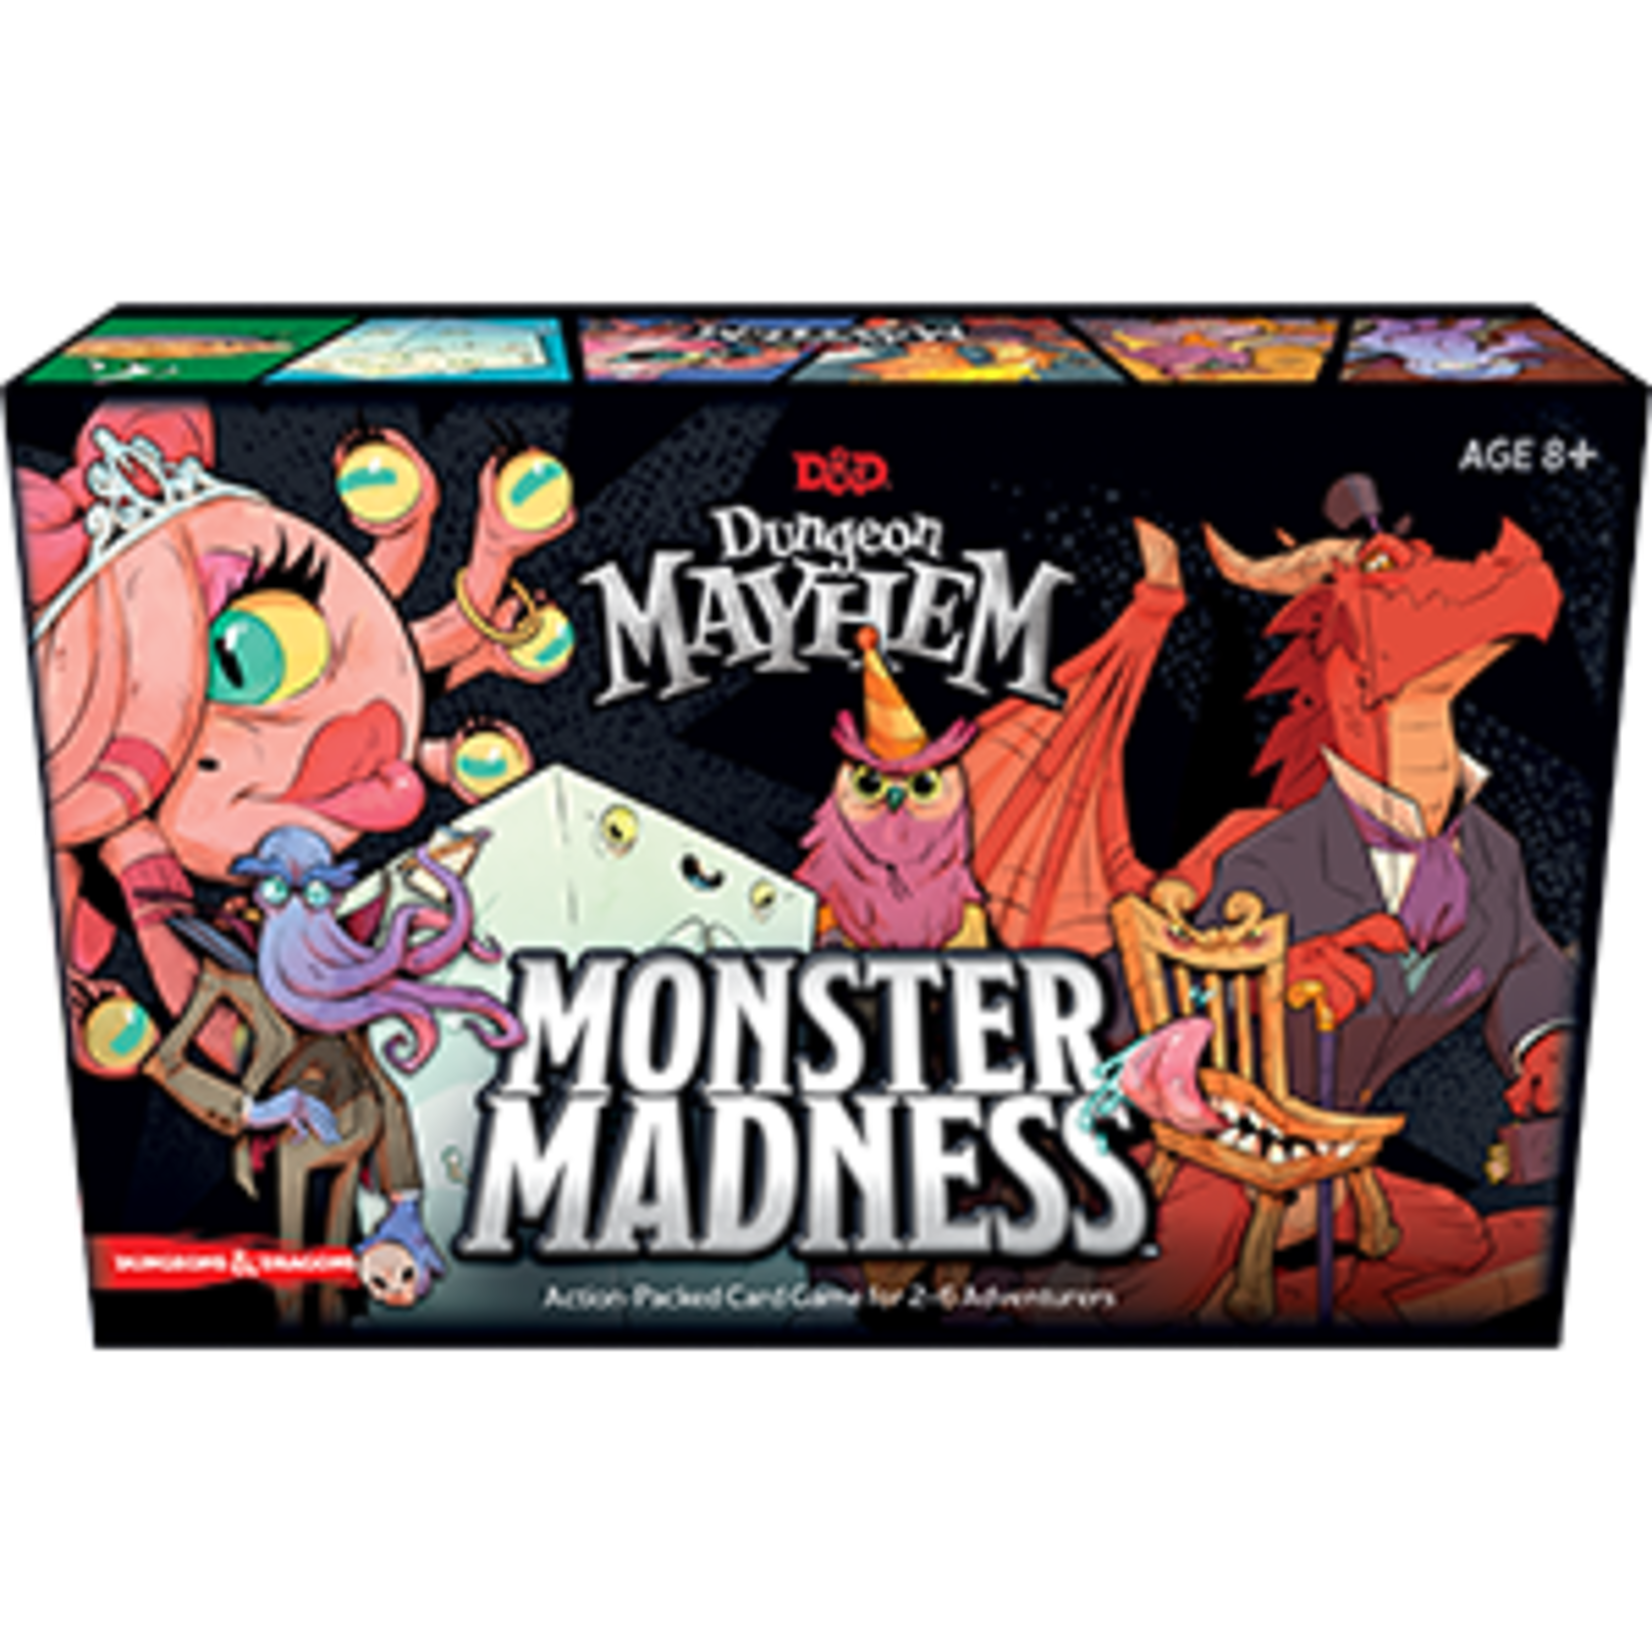 Wizards of the Coast D&D - Dungeon Mayhem Monster Madness